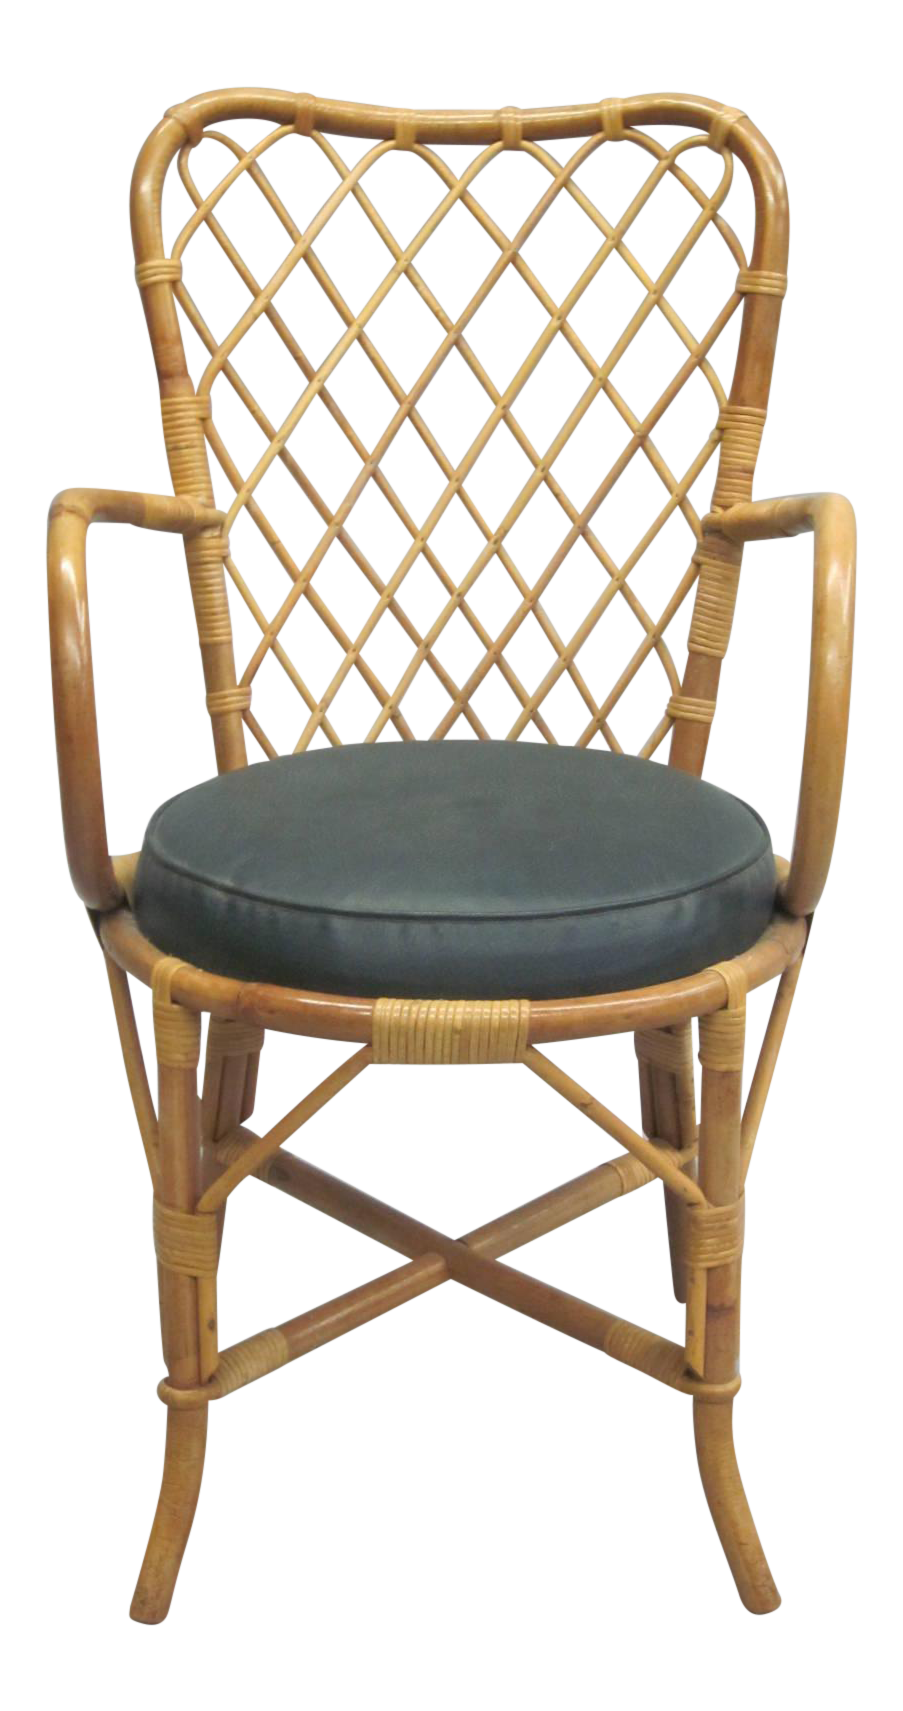 Two French Mid Century Modern Rattan Side Or Desk Chairs Attrib. To Jean  Royère